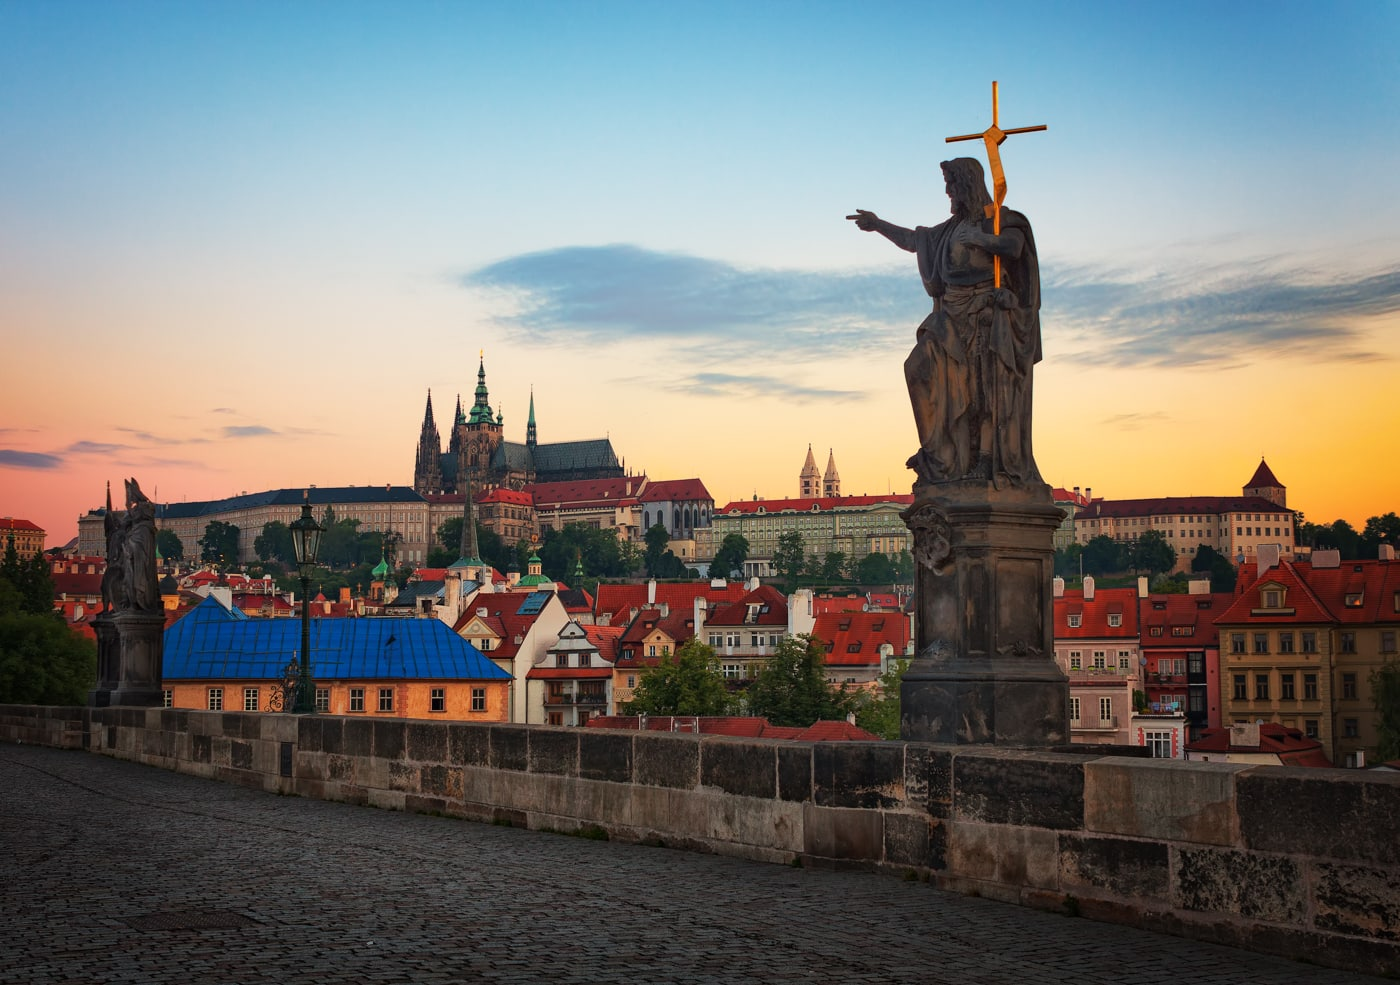 Statue on the Charles Bridge in Prague pointing to the Prague Castle at sunrise